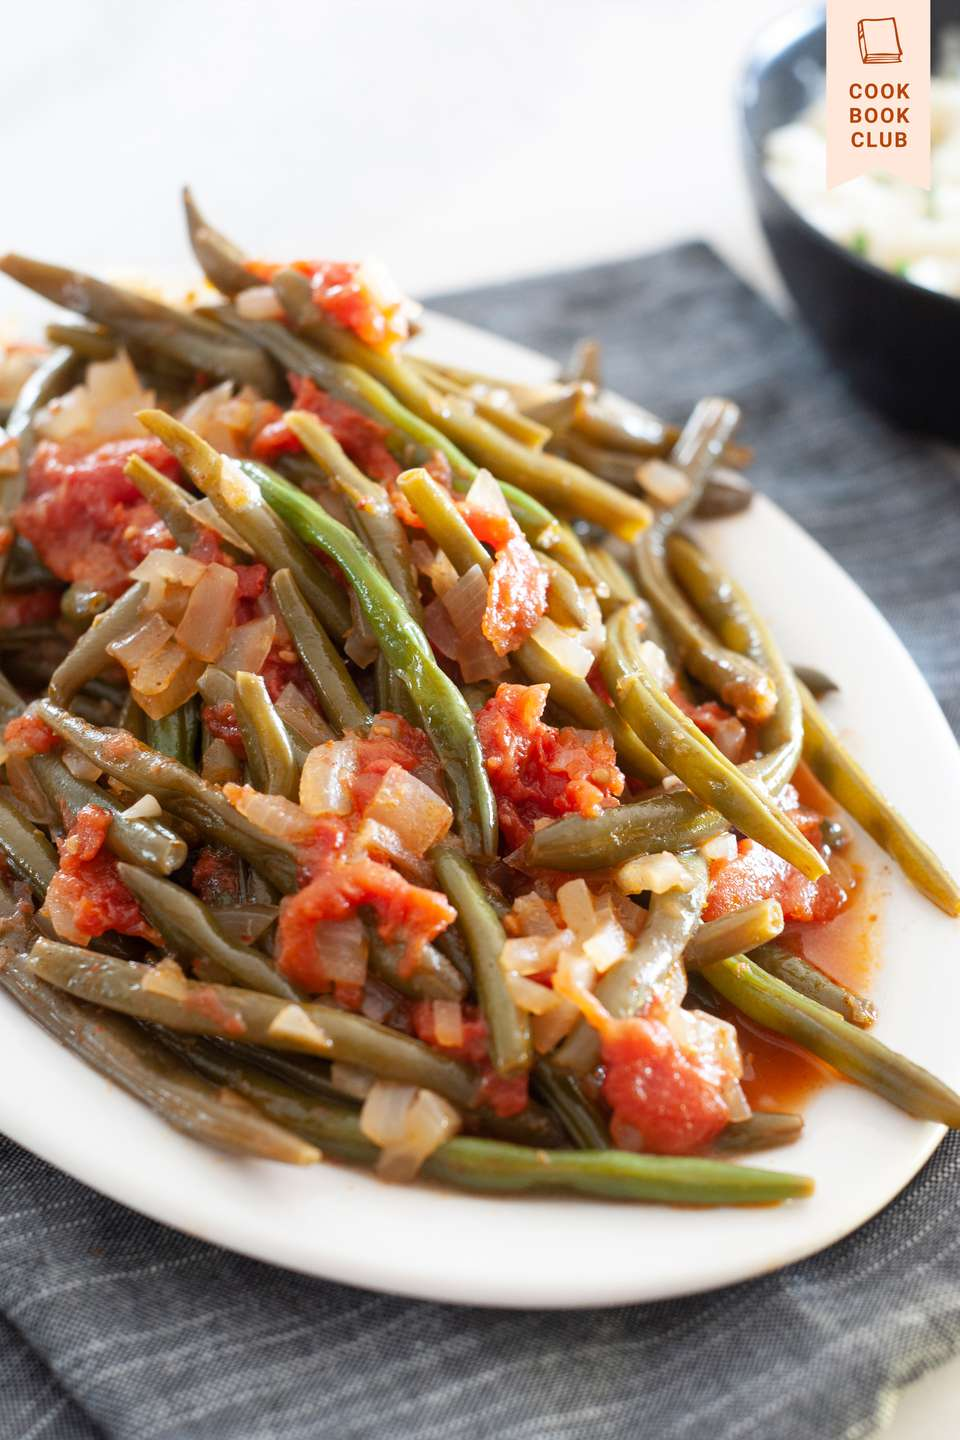 Partial view of a platter of Turkish green beans.